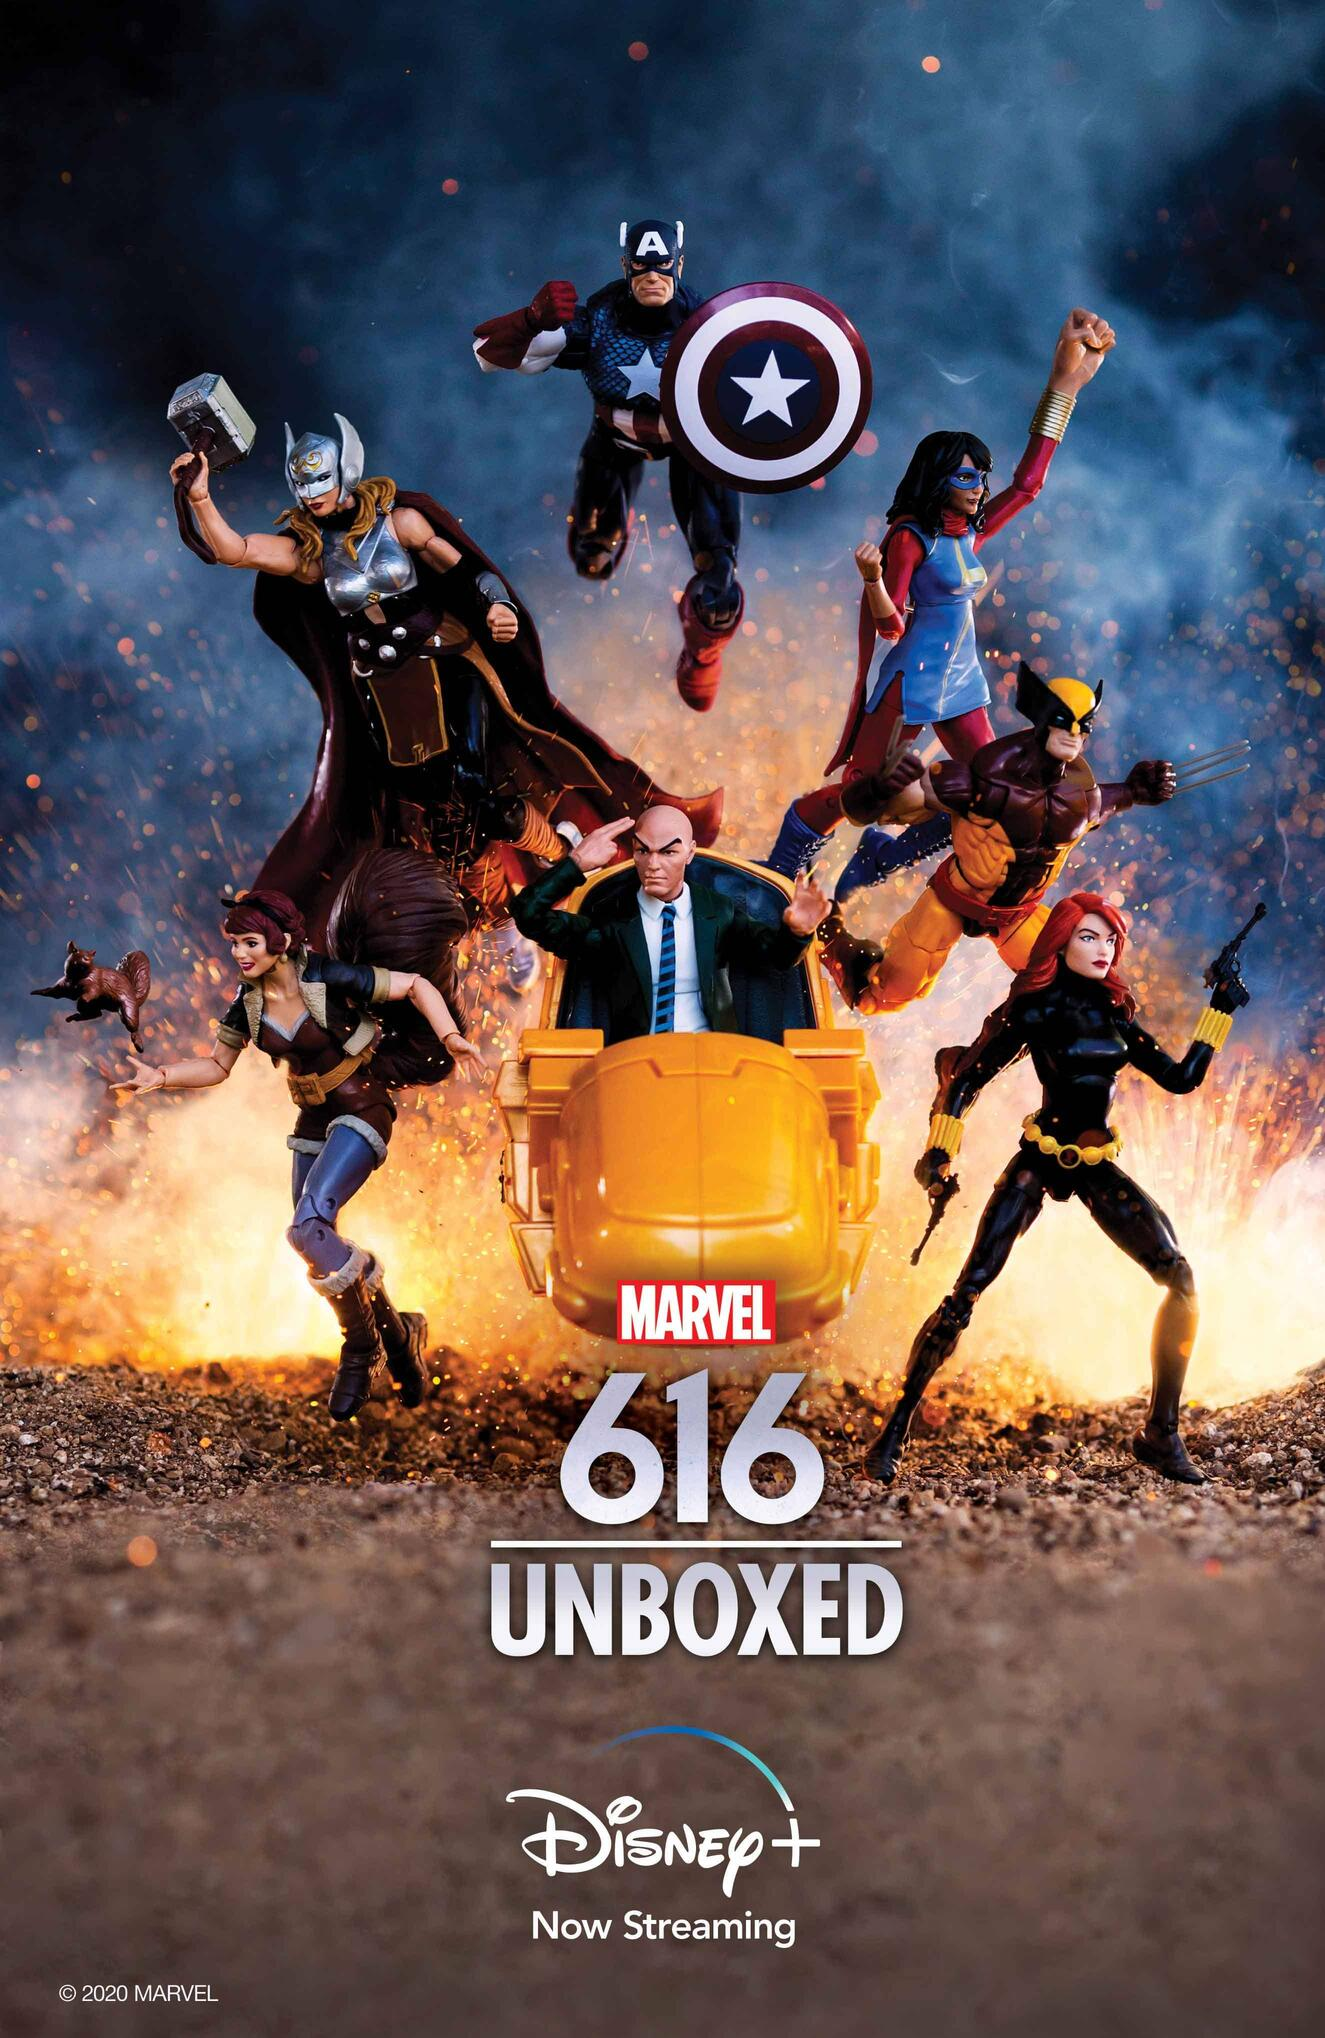 Marvel's 616 Unboxed